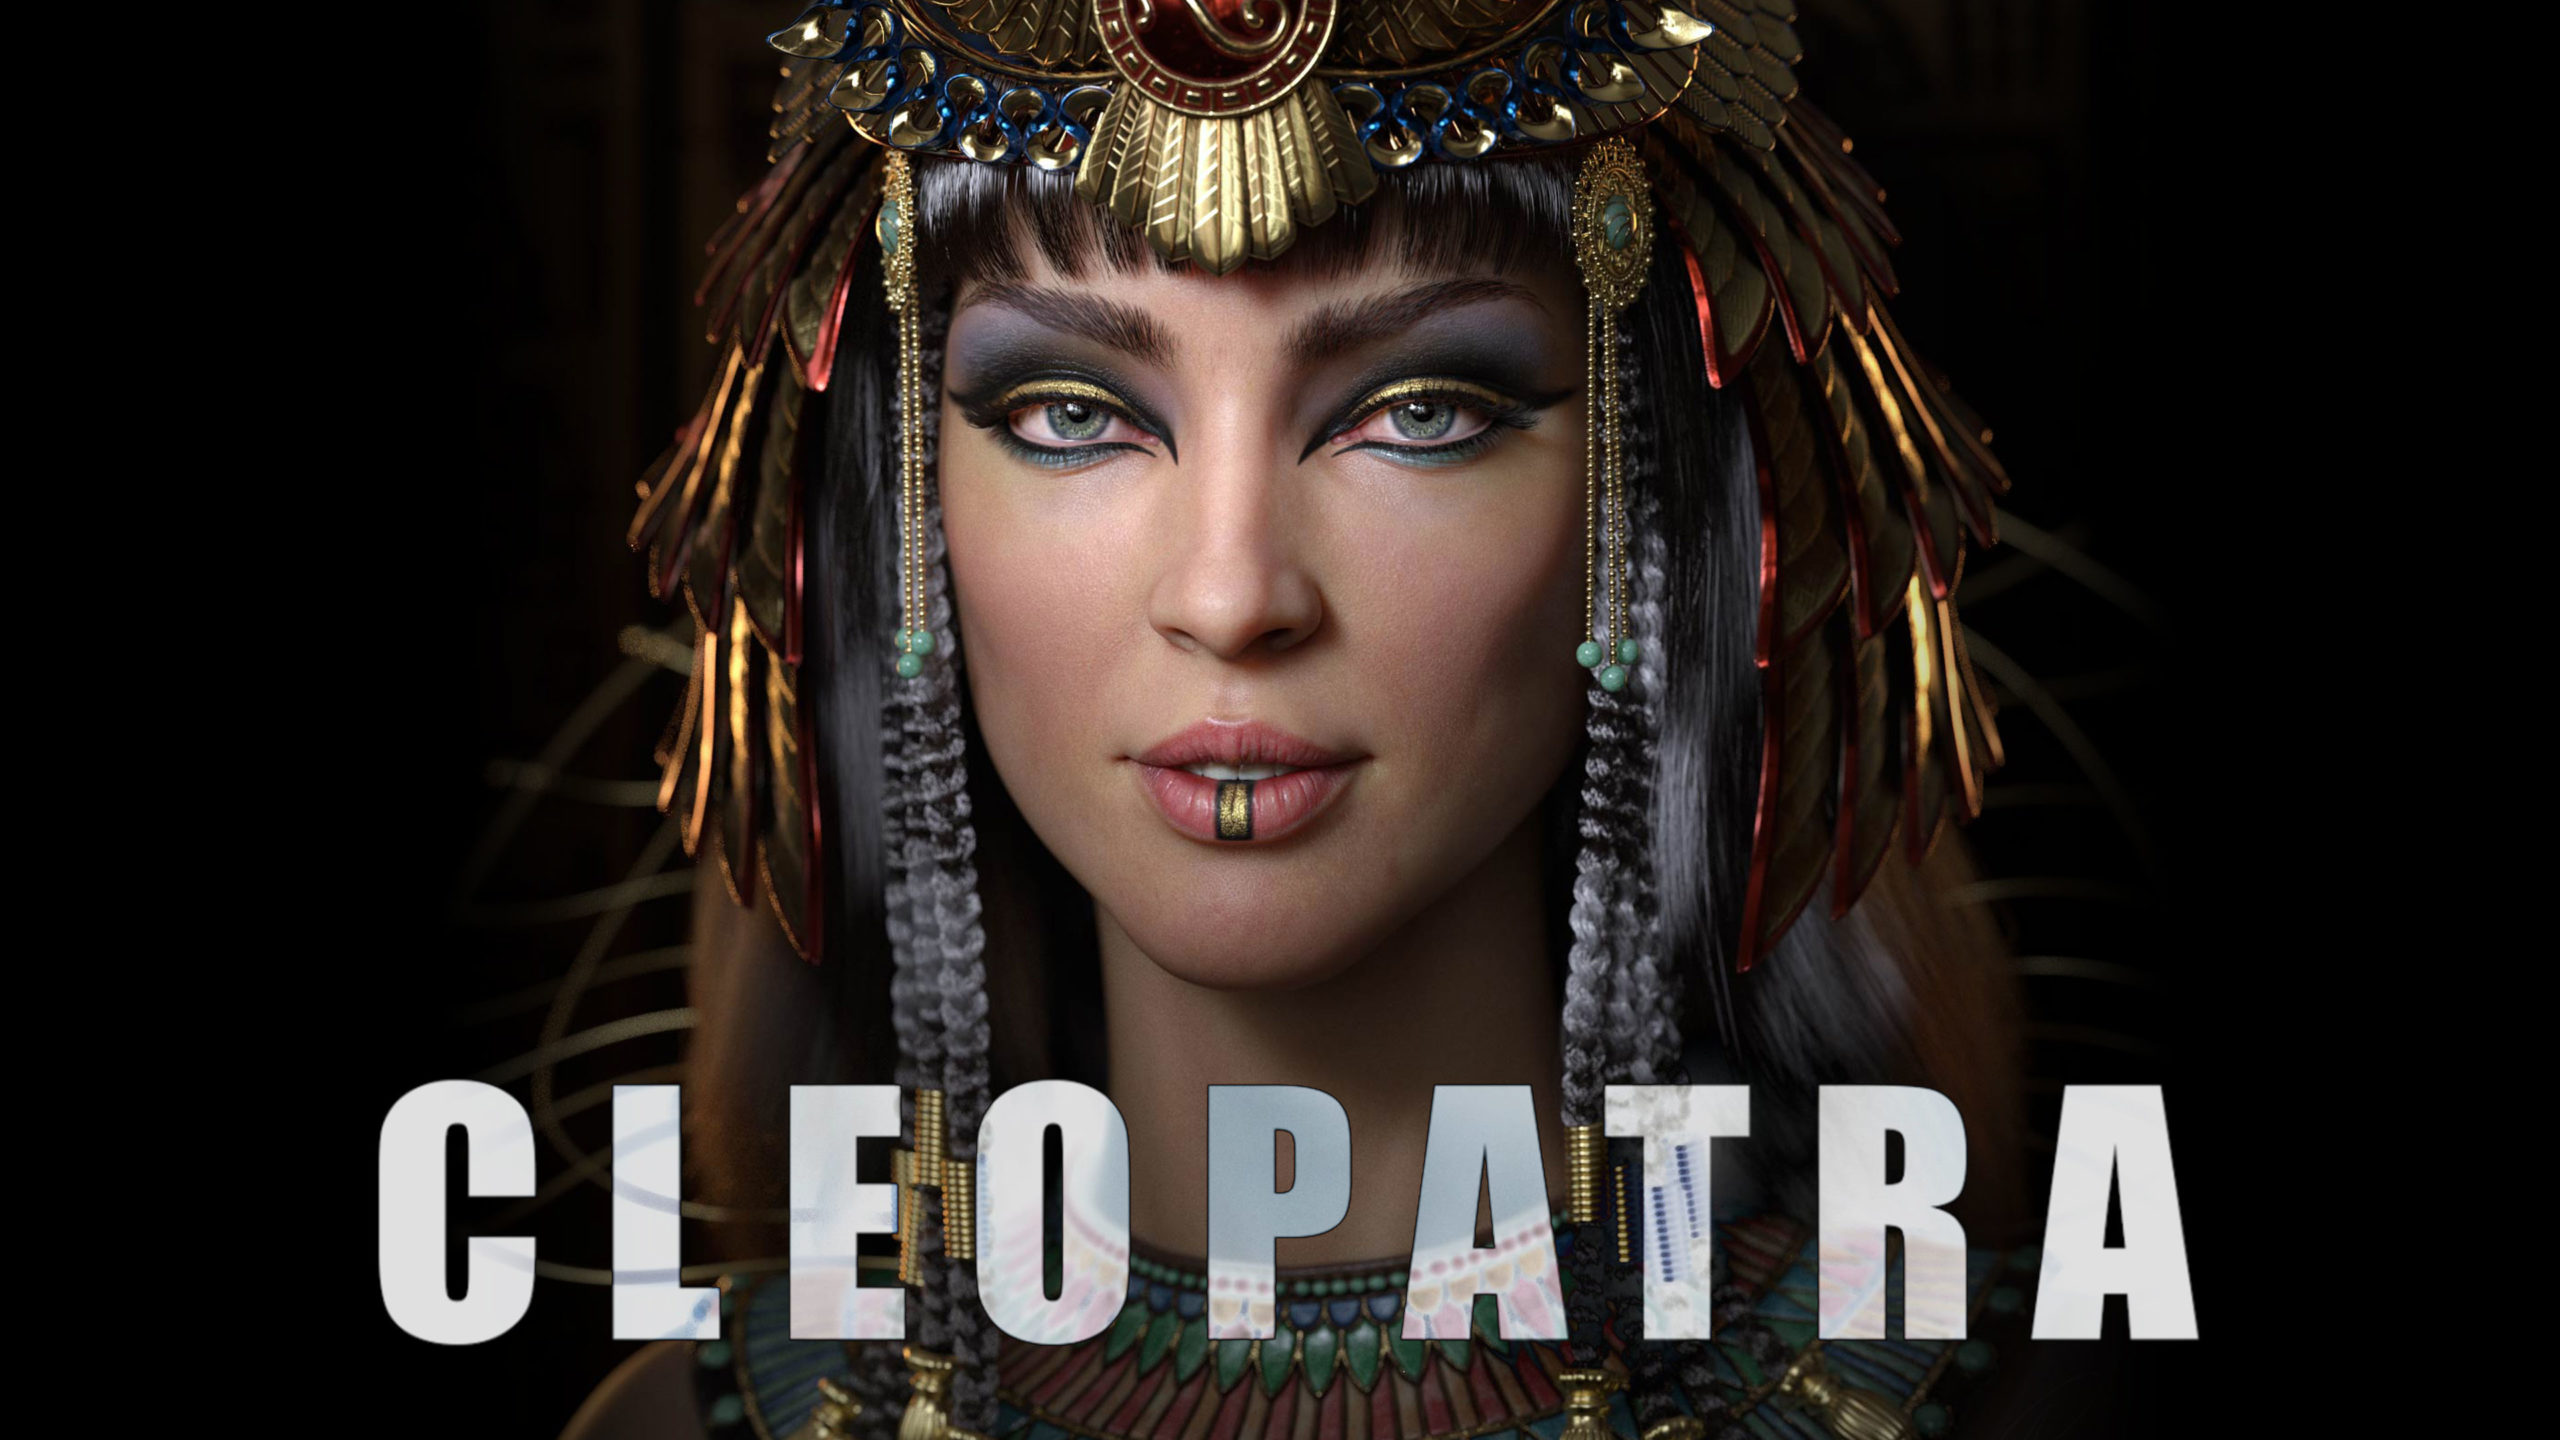 cleopatra_3d_character_zbrush_maya_alexander_beim-scaled Cleopatra CG Character